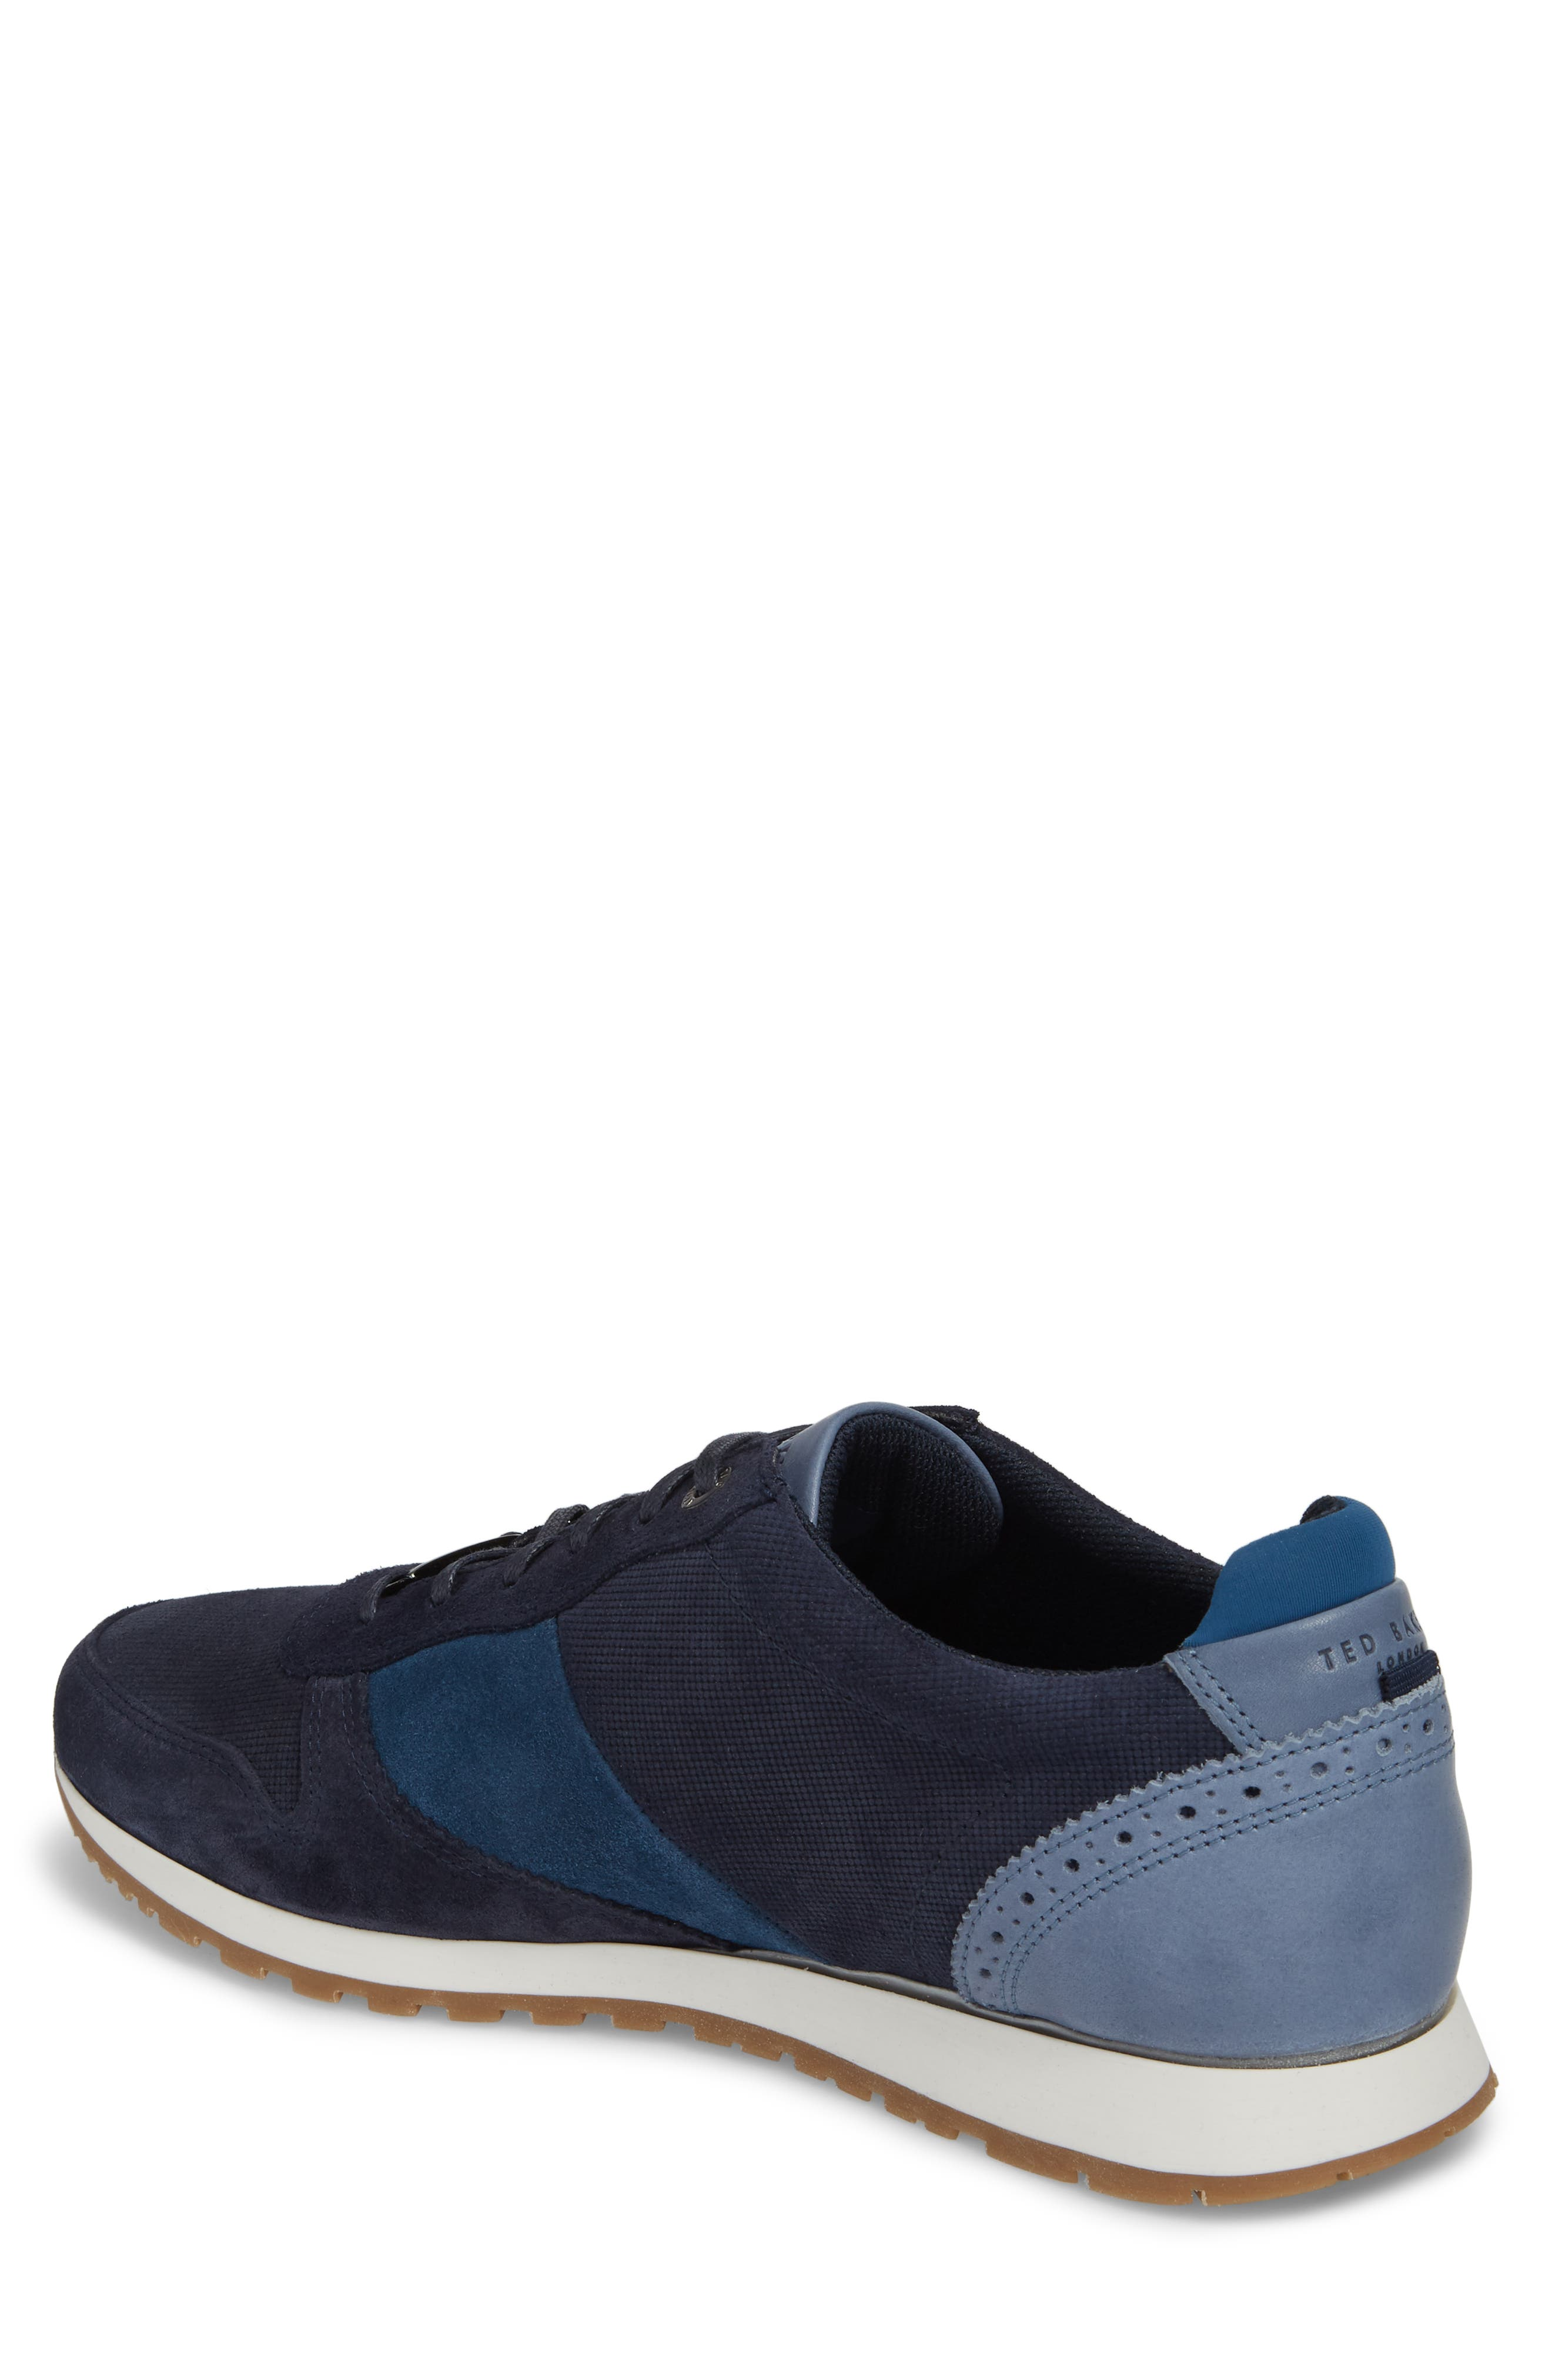 Shindls Low Top Sneaker,                             Alternate thumbnail 2, color,                             BLUE LEATHER/ SUEDE